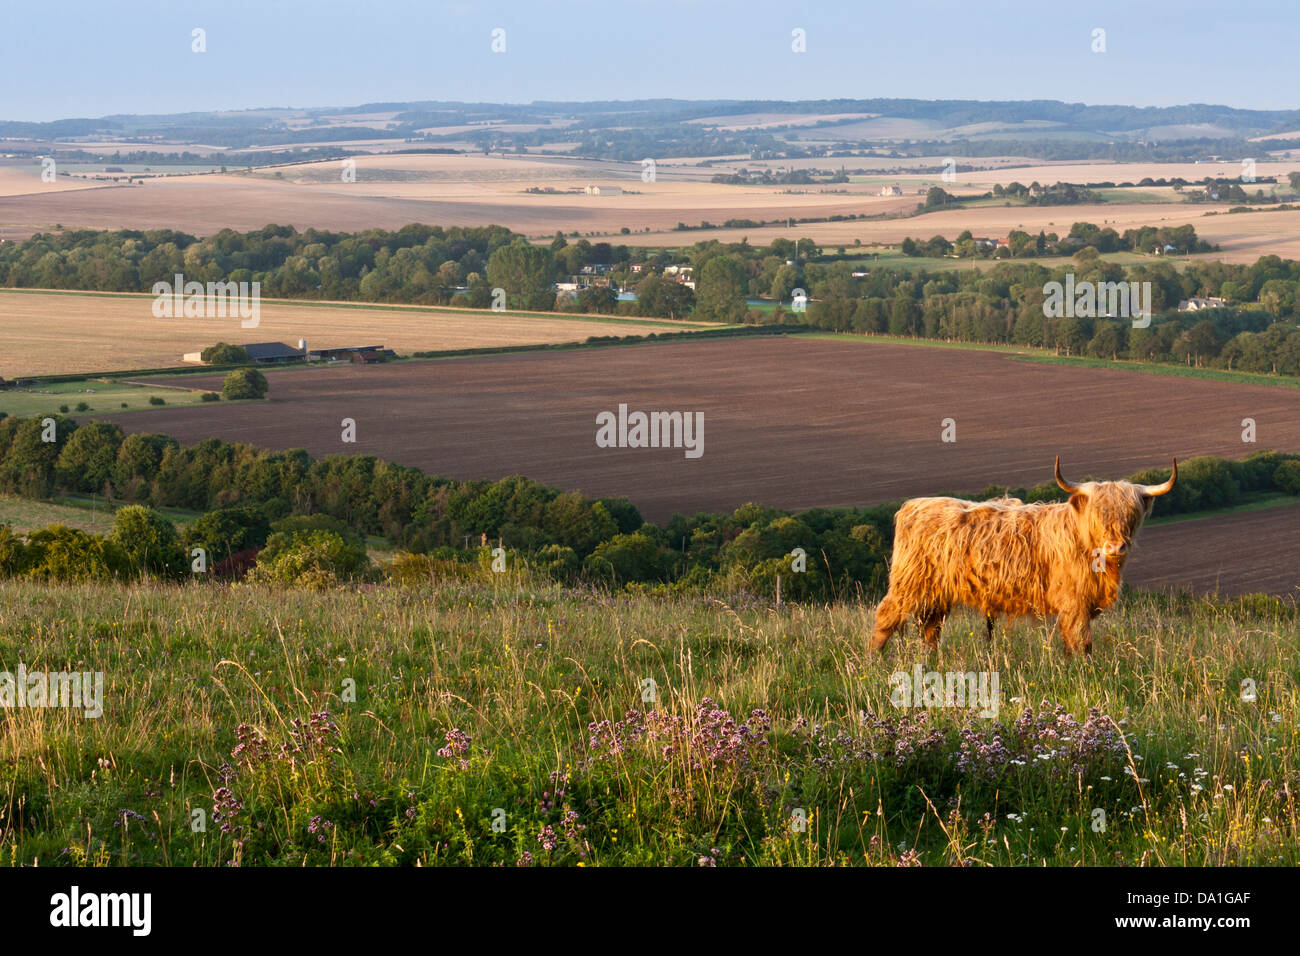 A Highland Cattle bull in a field on a Chiltern's hillside in Berkshire, southern England, GB, UK. - Stock Image